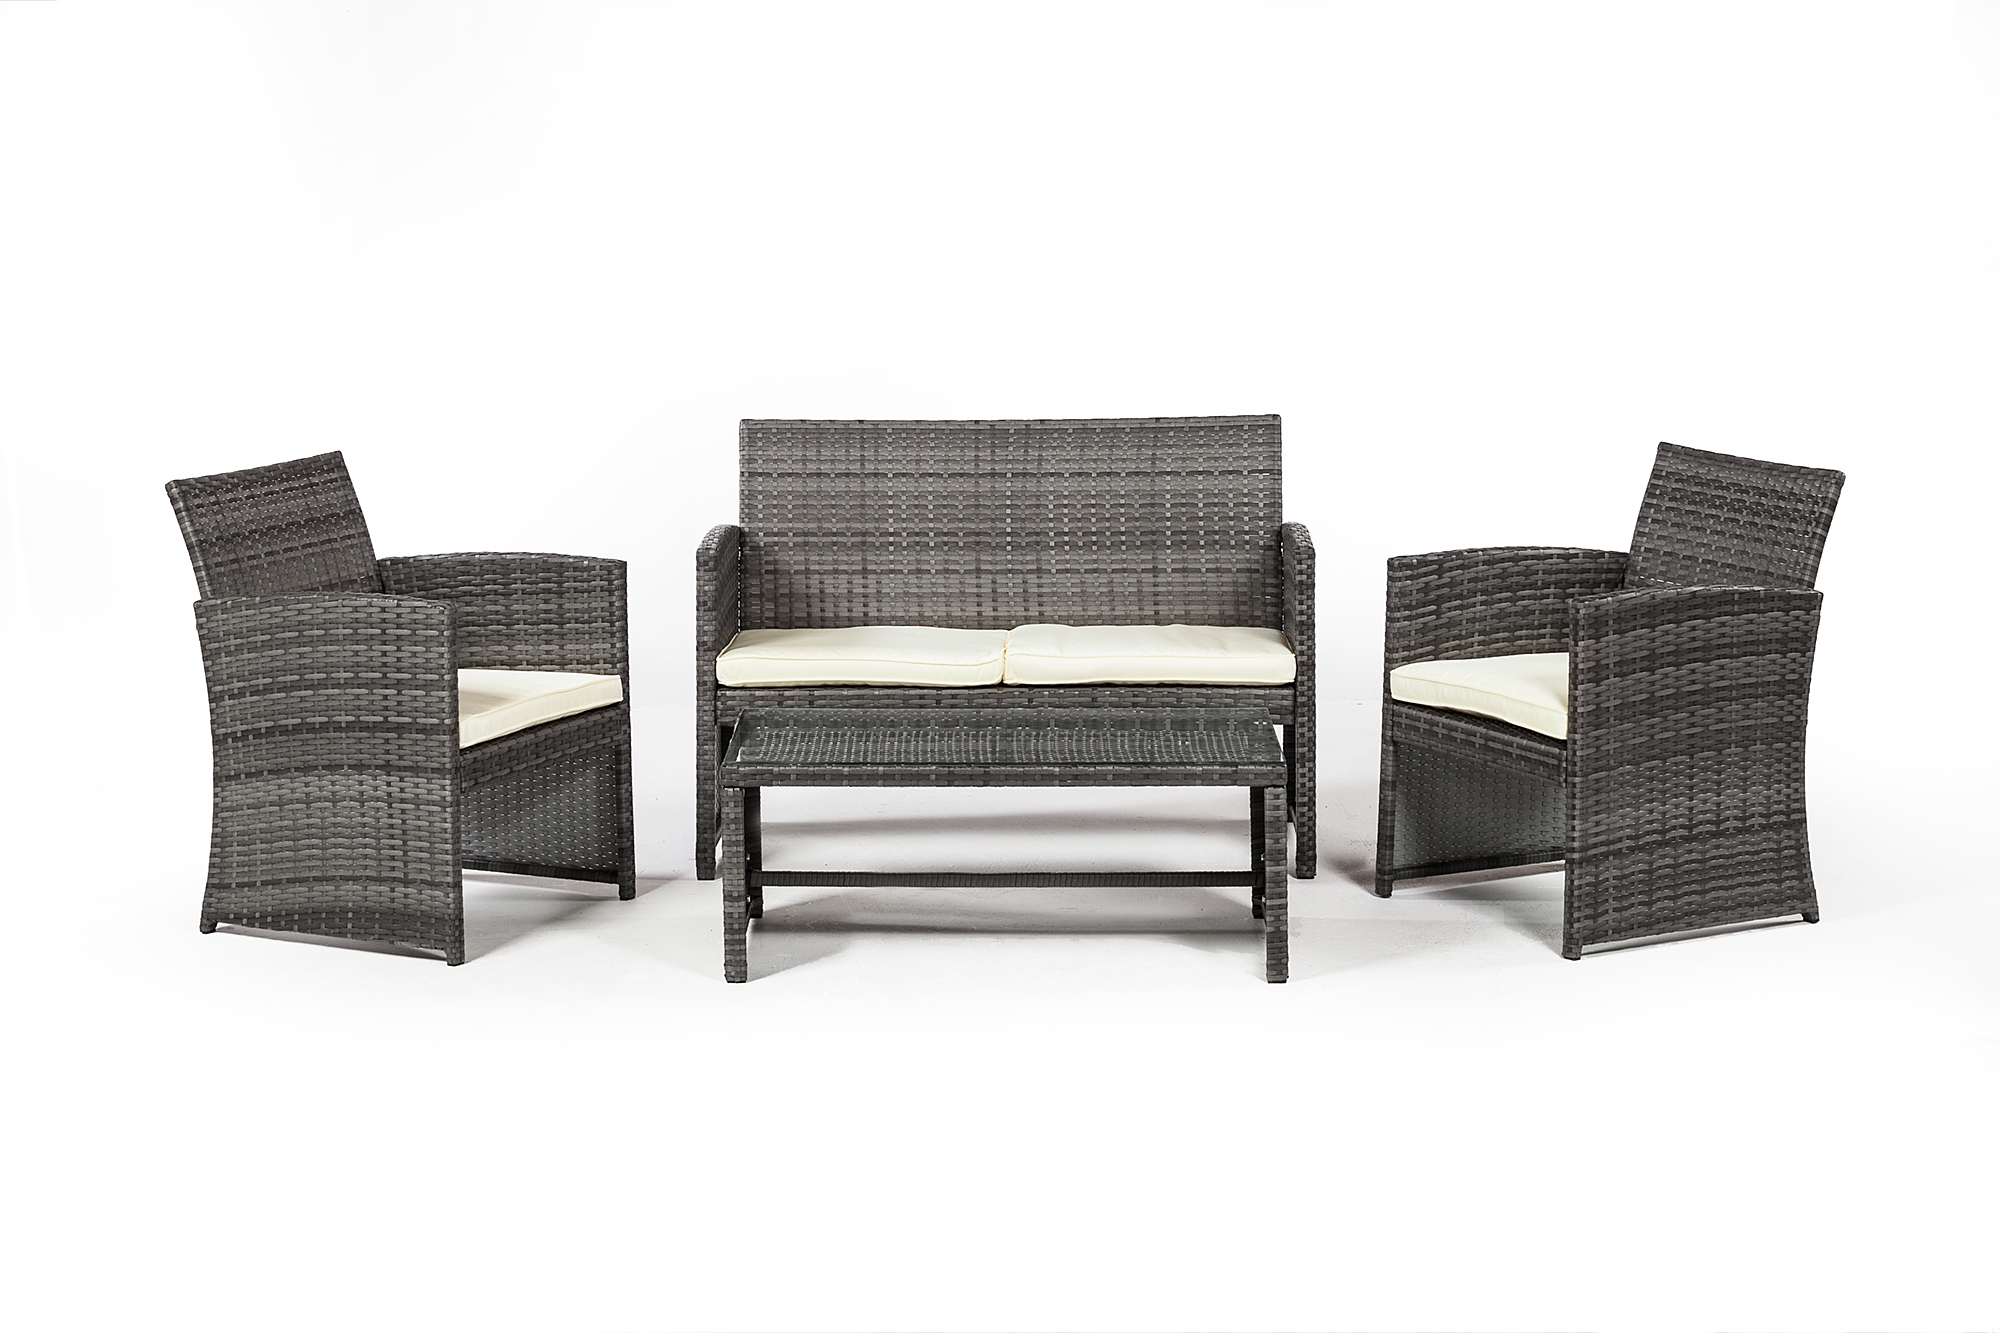 Outdoor Sofa Rattan Outdoor Furniture 4 Piece Set In Grey Rattan